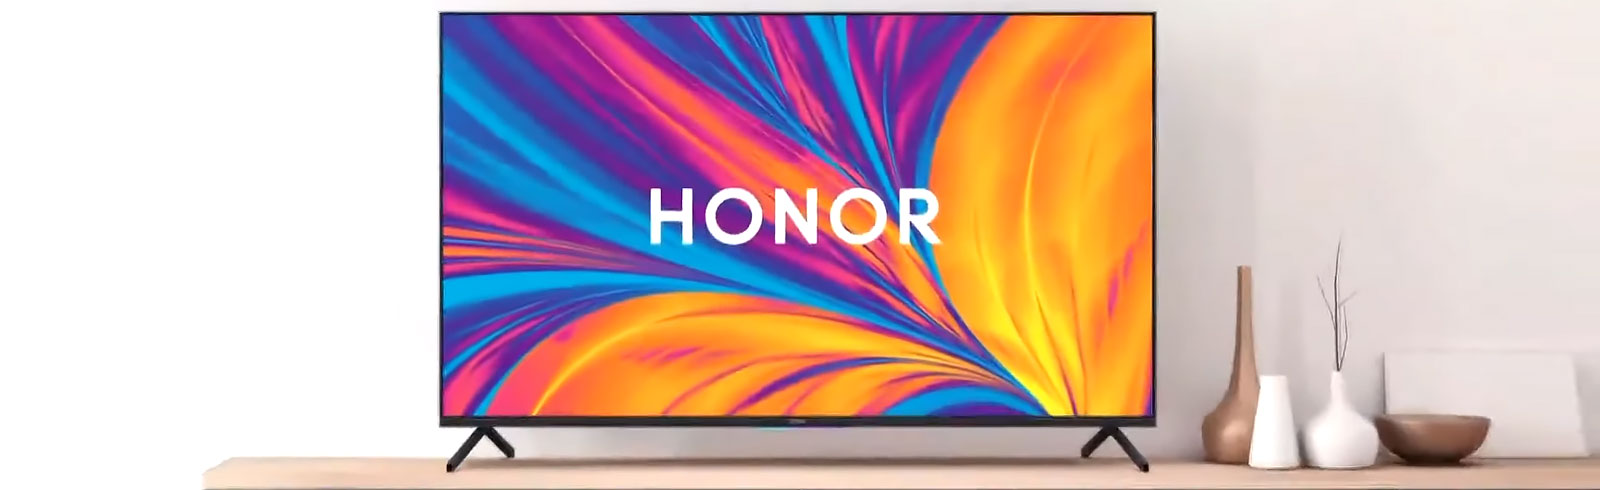 Huawei has announced its first smart TV - the Honor Vision